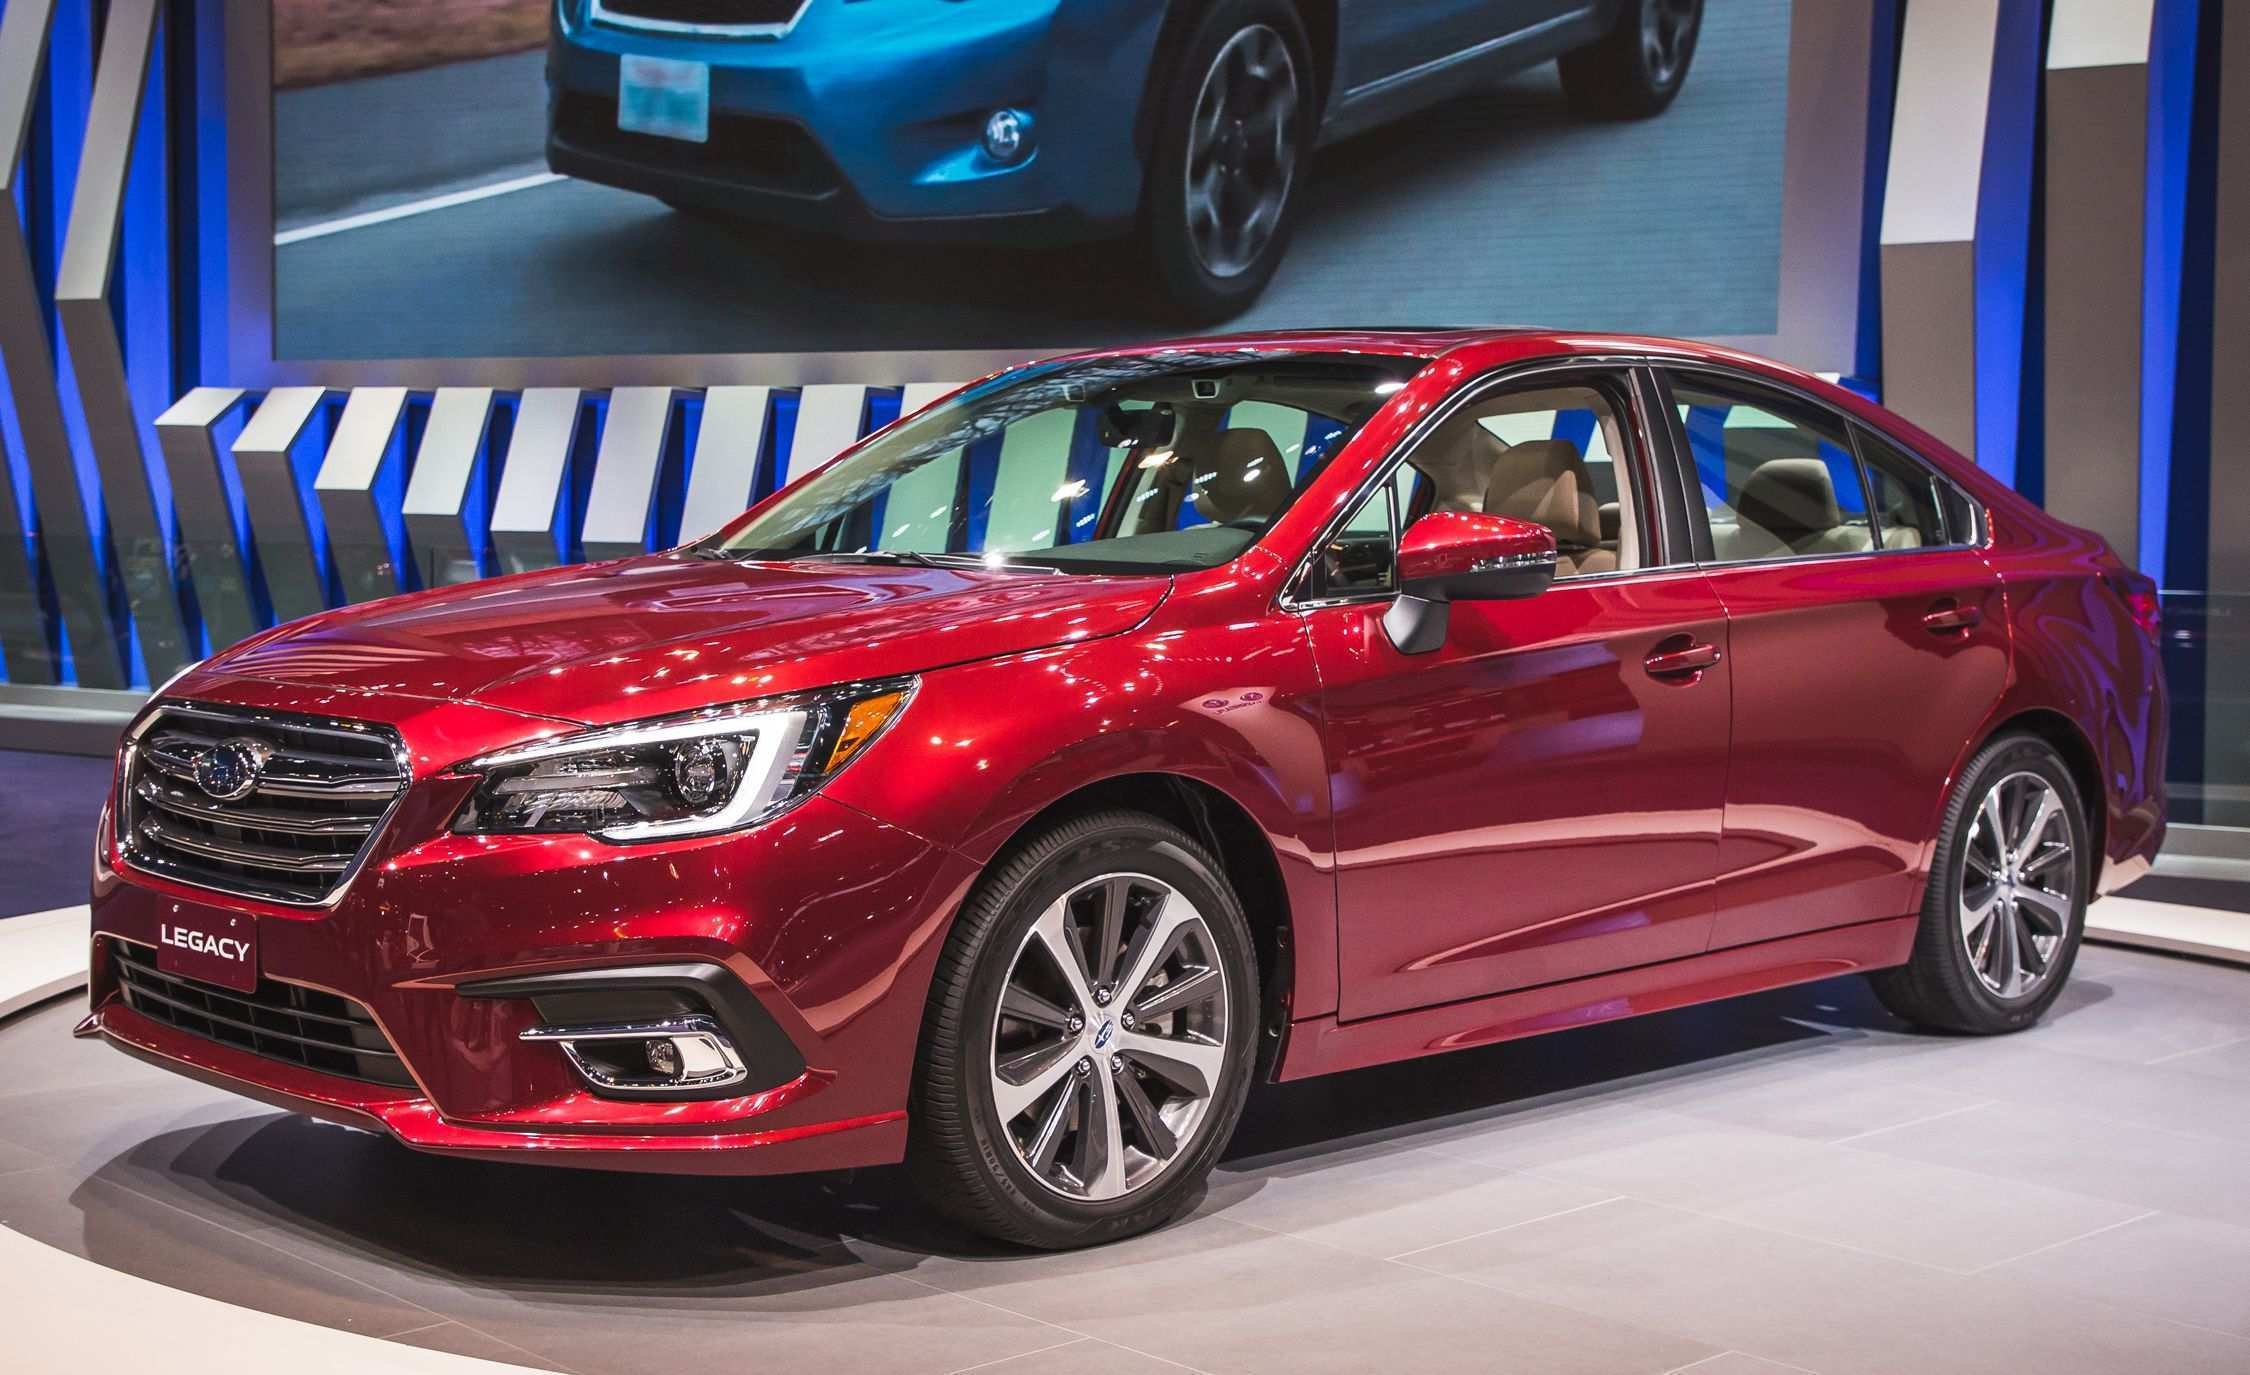 29 Gallery of Subaru Legacy Gt 2020 Pictures for Subaru Legacy Gt 2020